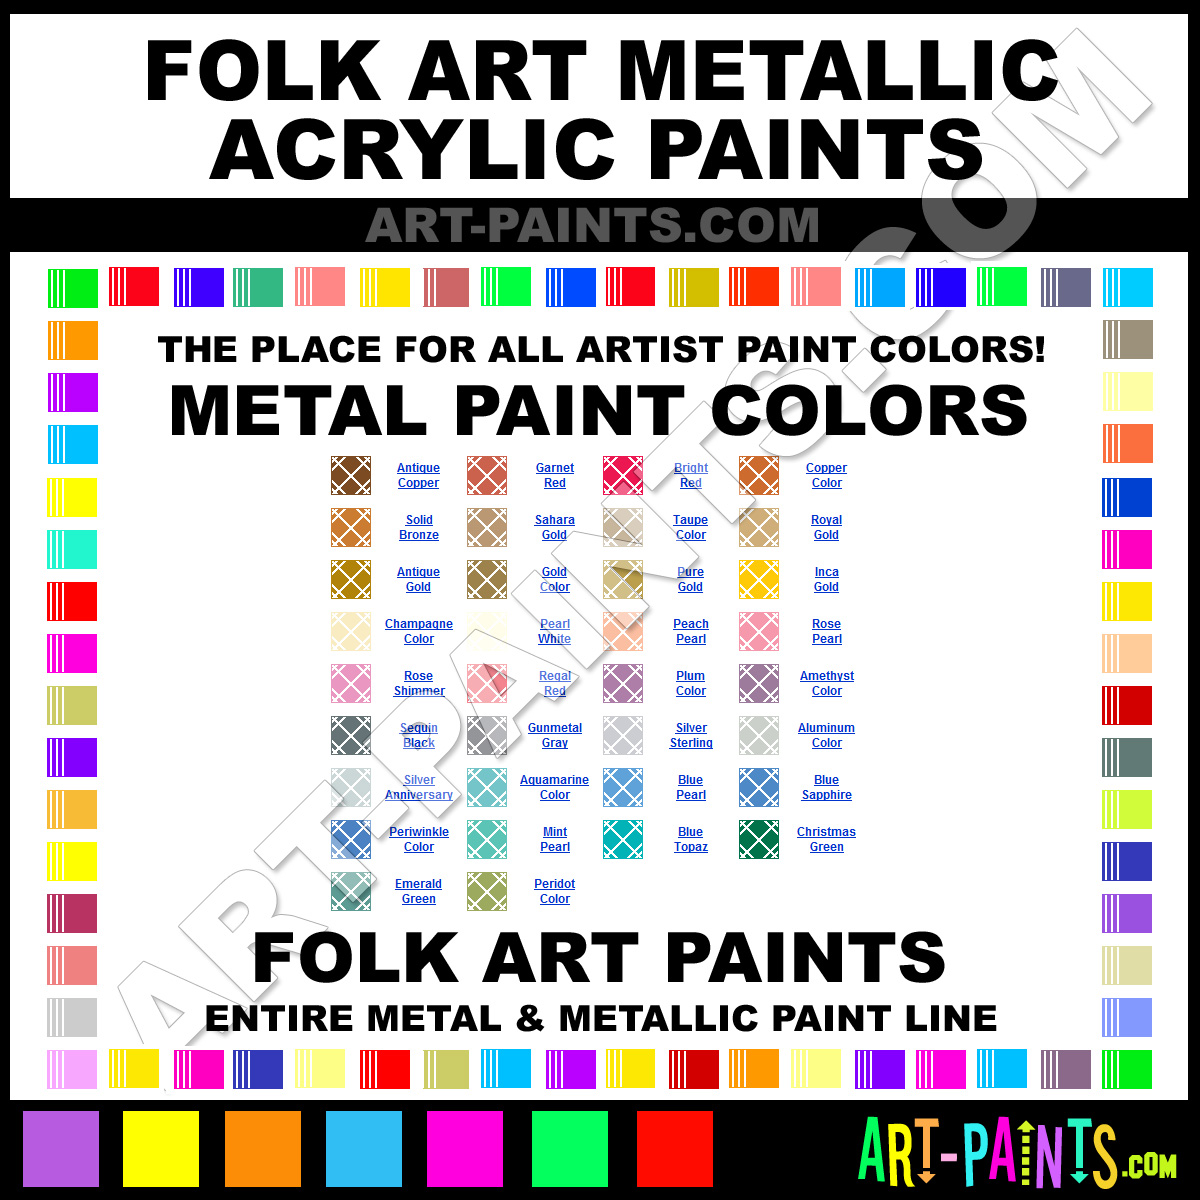 Folk art acrylic paint color chart - Folk Art Metals Folk Art Metallic Acrylic Metallic Paints